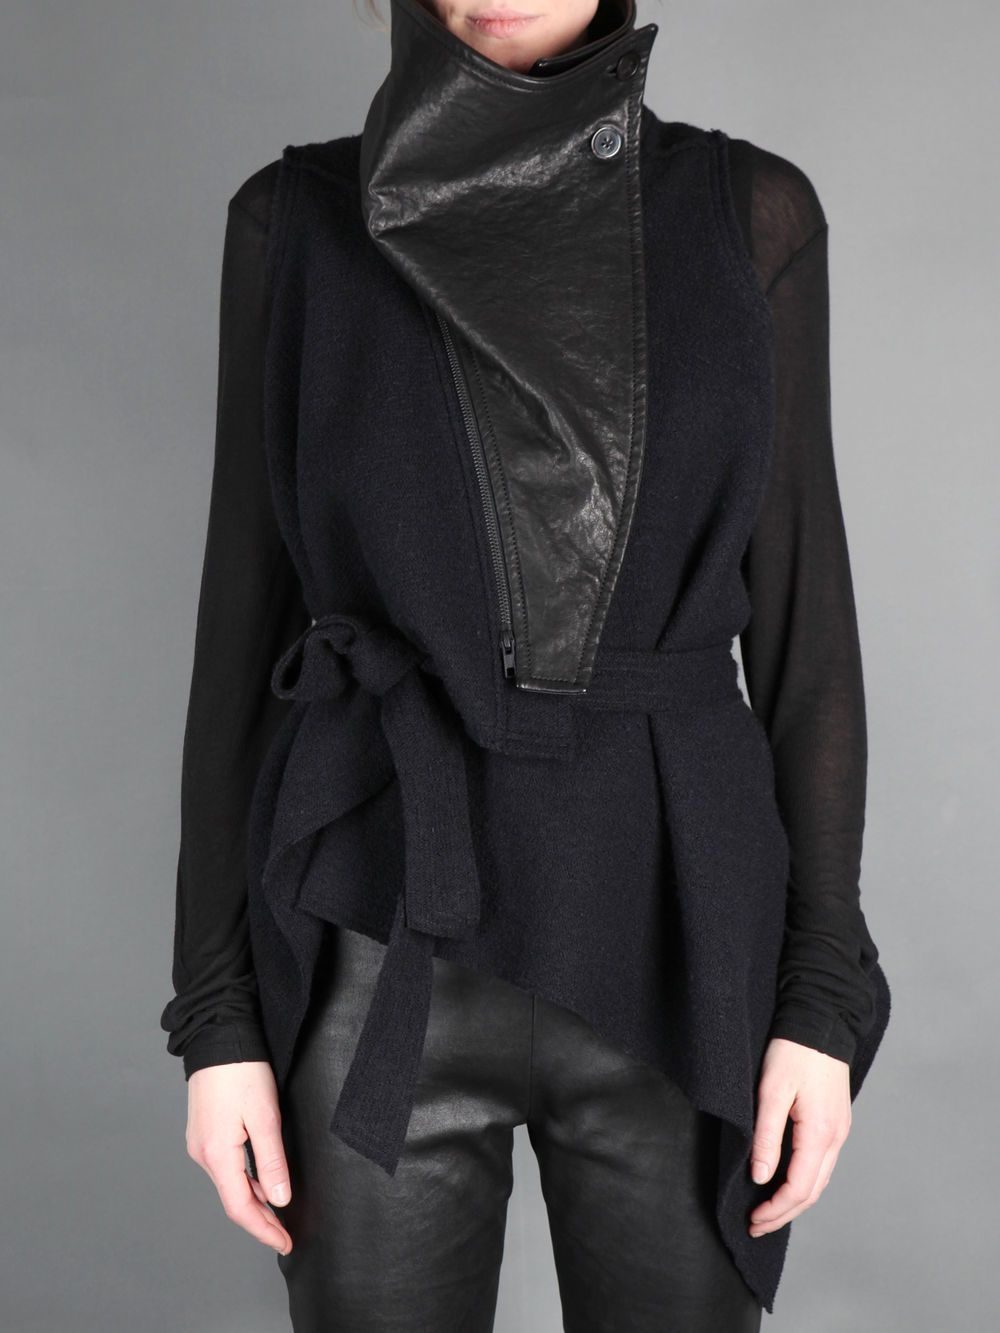 ANN DEMEULEMEESTER   waistcoat with belt closure & detachable leather front piece